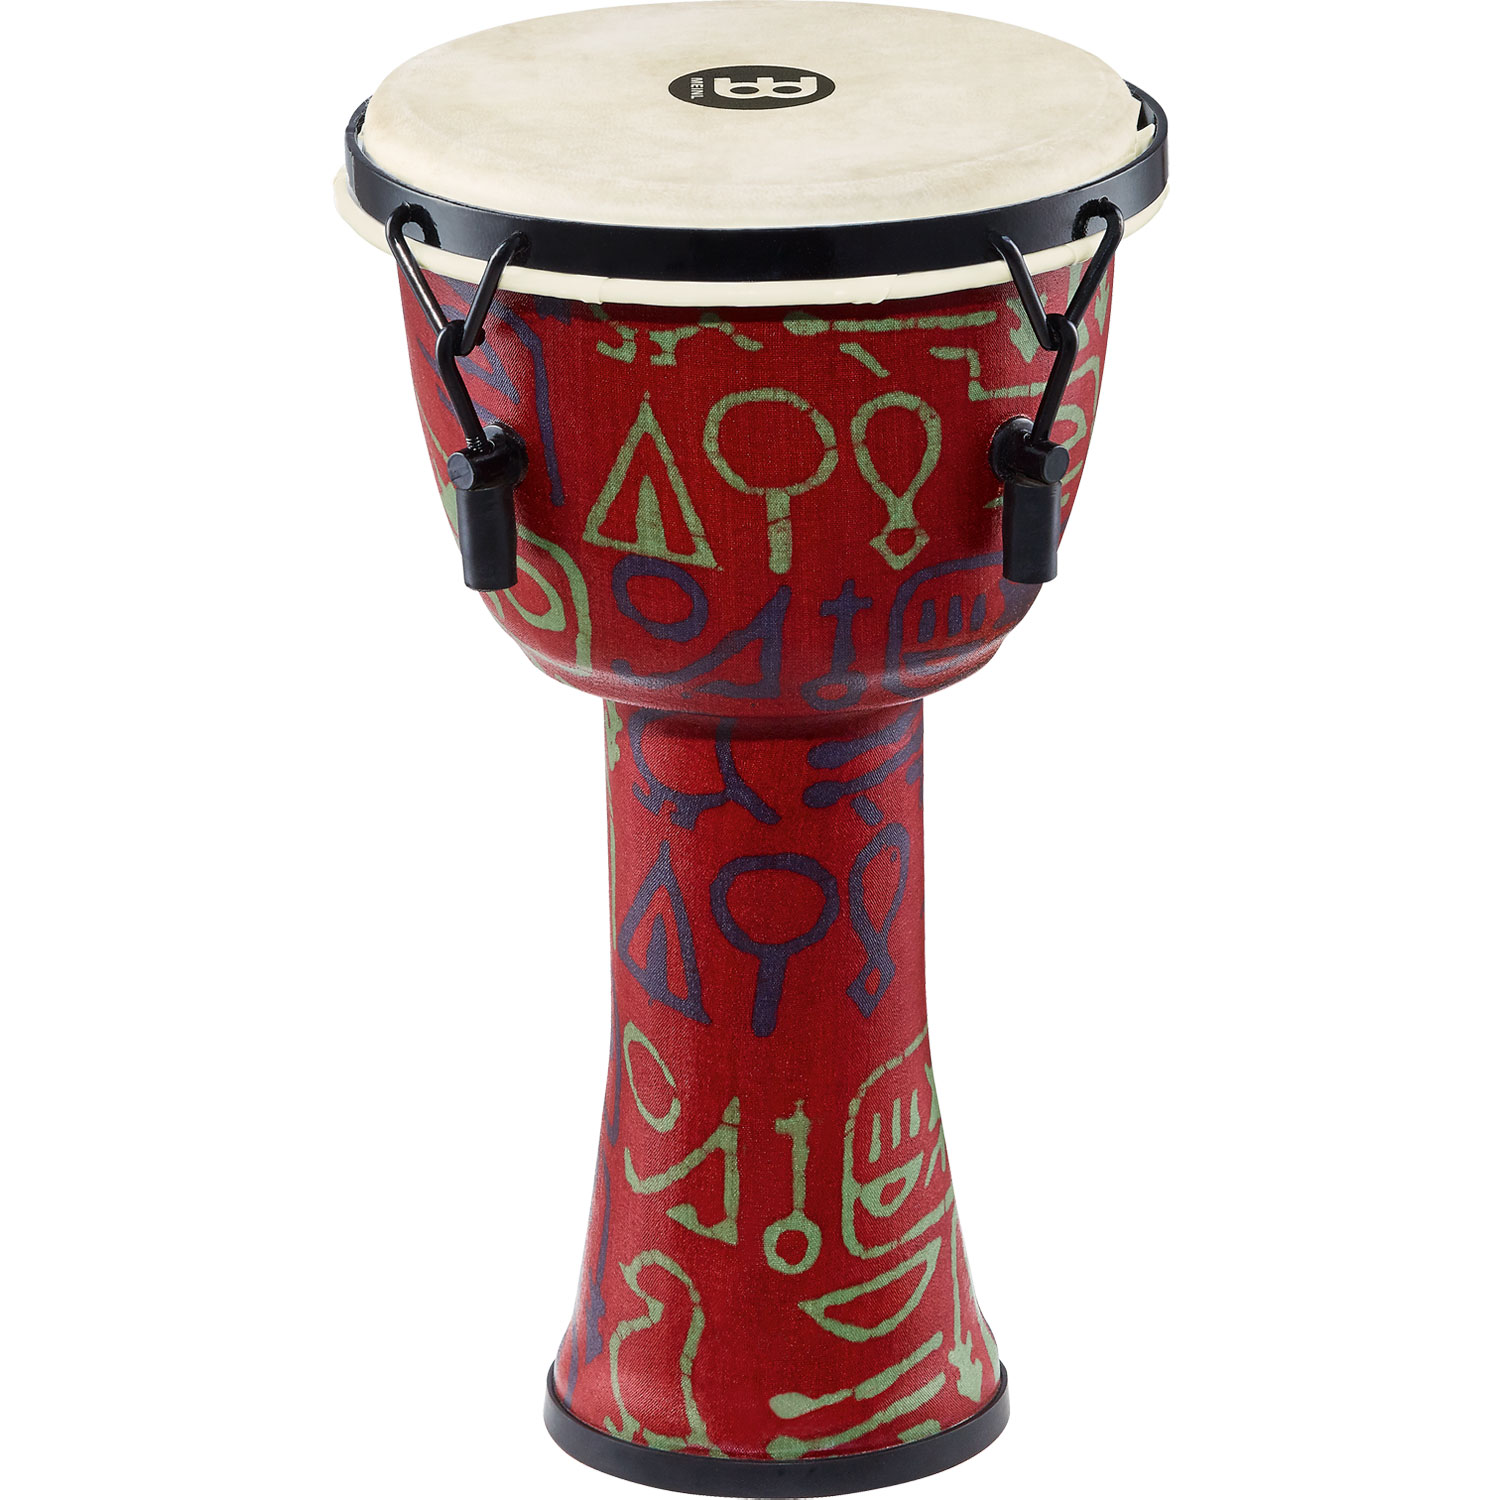 "Meinl 8"" Mechanically-Tuned Travel Djembe in Pharaoh"